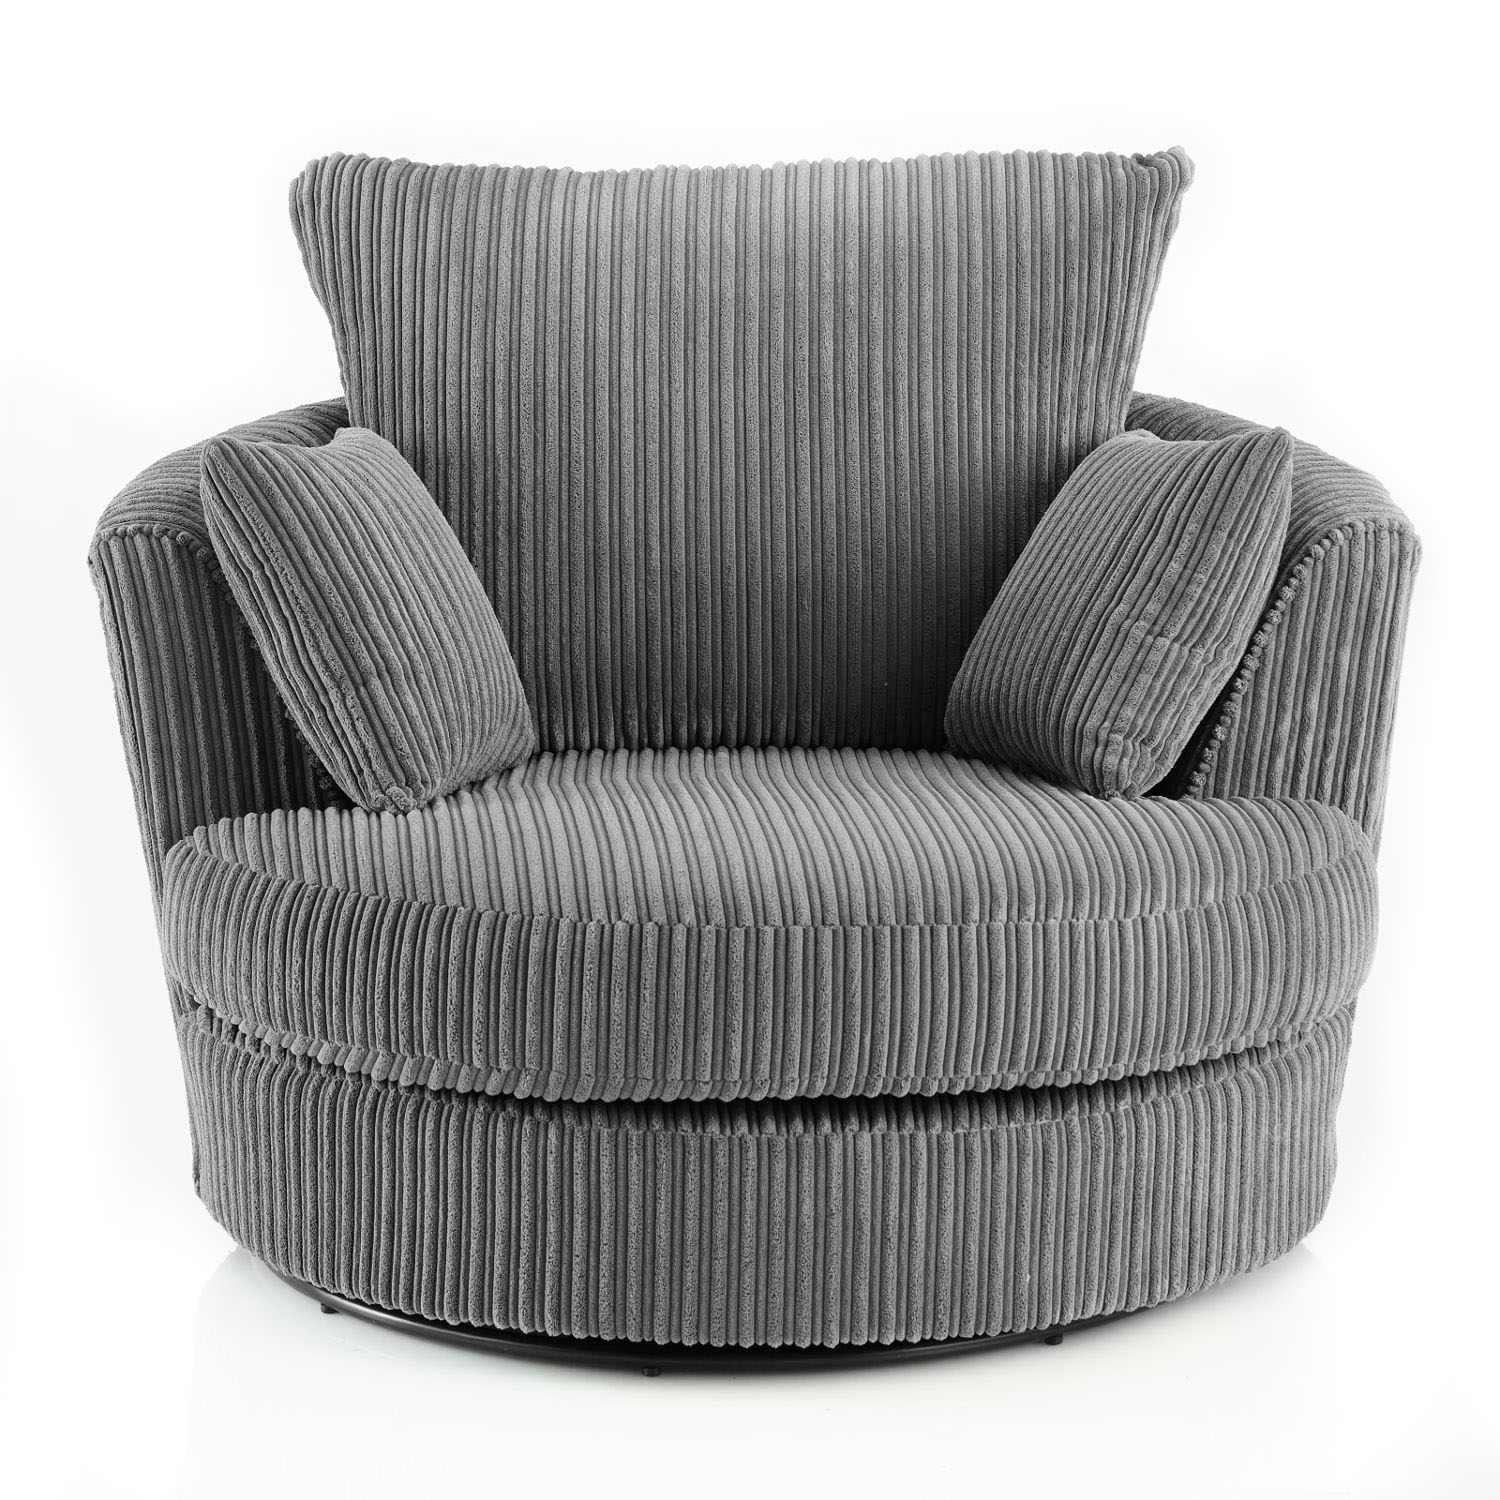 Miranda Swivel Cuddle Chair Fabric Leather Armchair Jumbo Cord Grey Pertaining To Grey Swivel Chairs (Image 11 of 20)